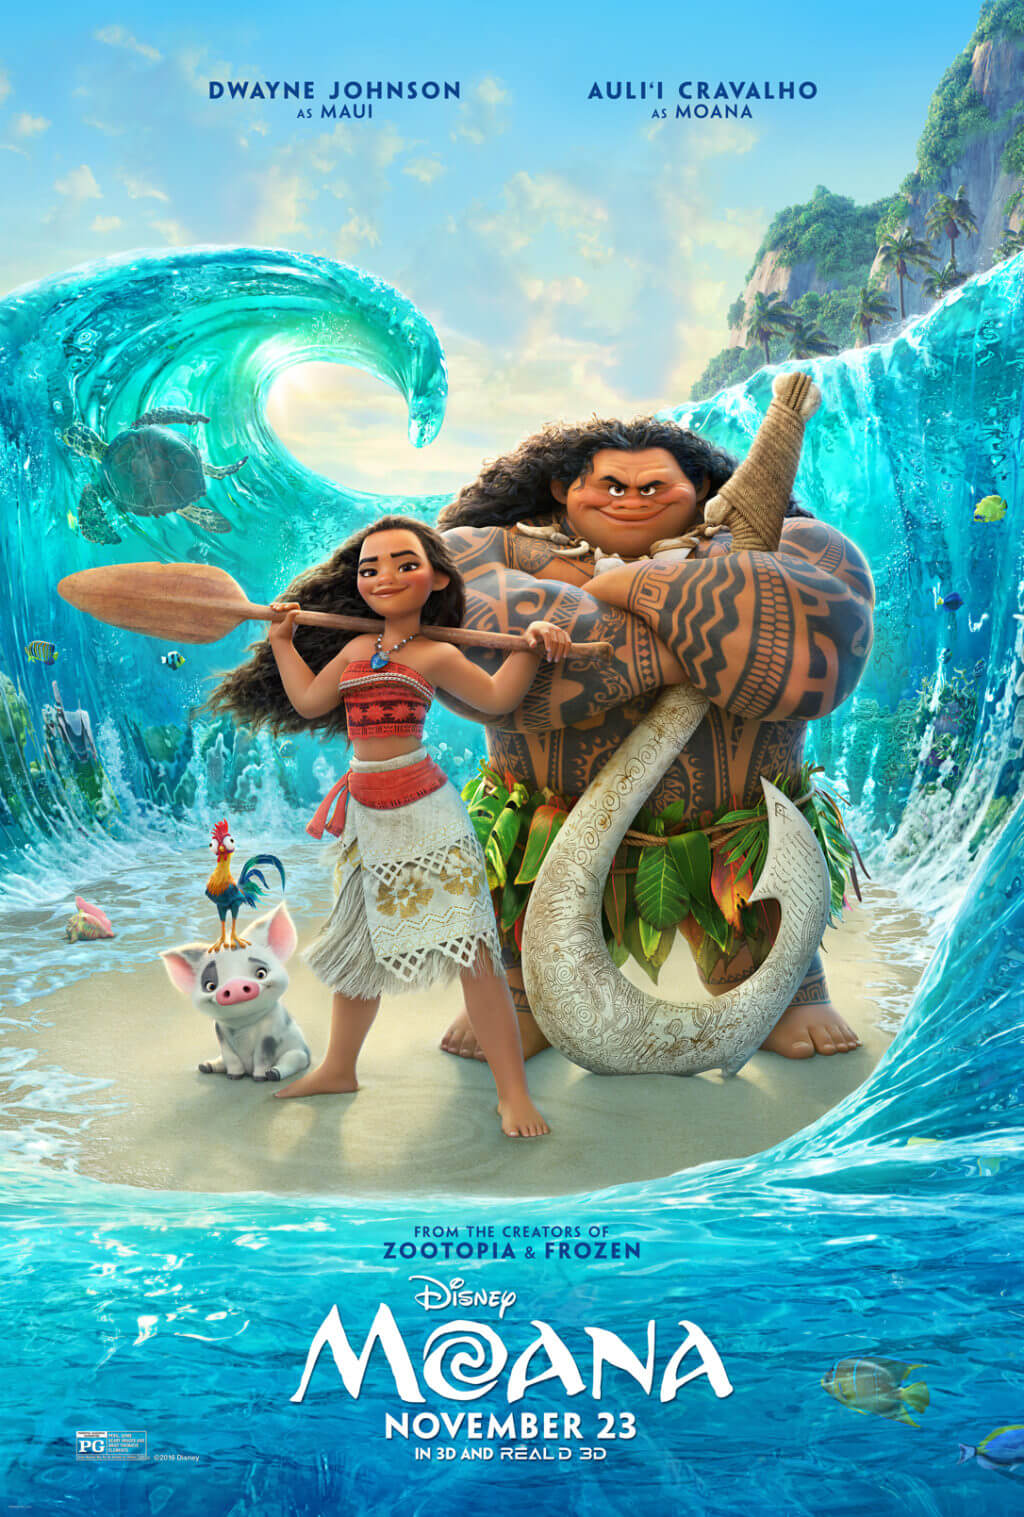 Come see our #review for @DisneyMoana & grab a Heart of Te Fiti Drink! #Moana #ad #RWM